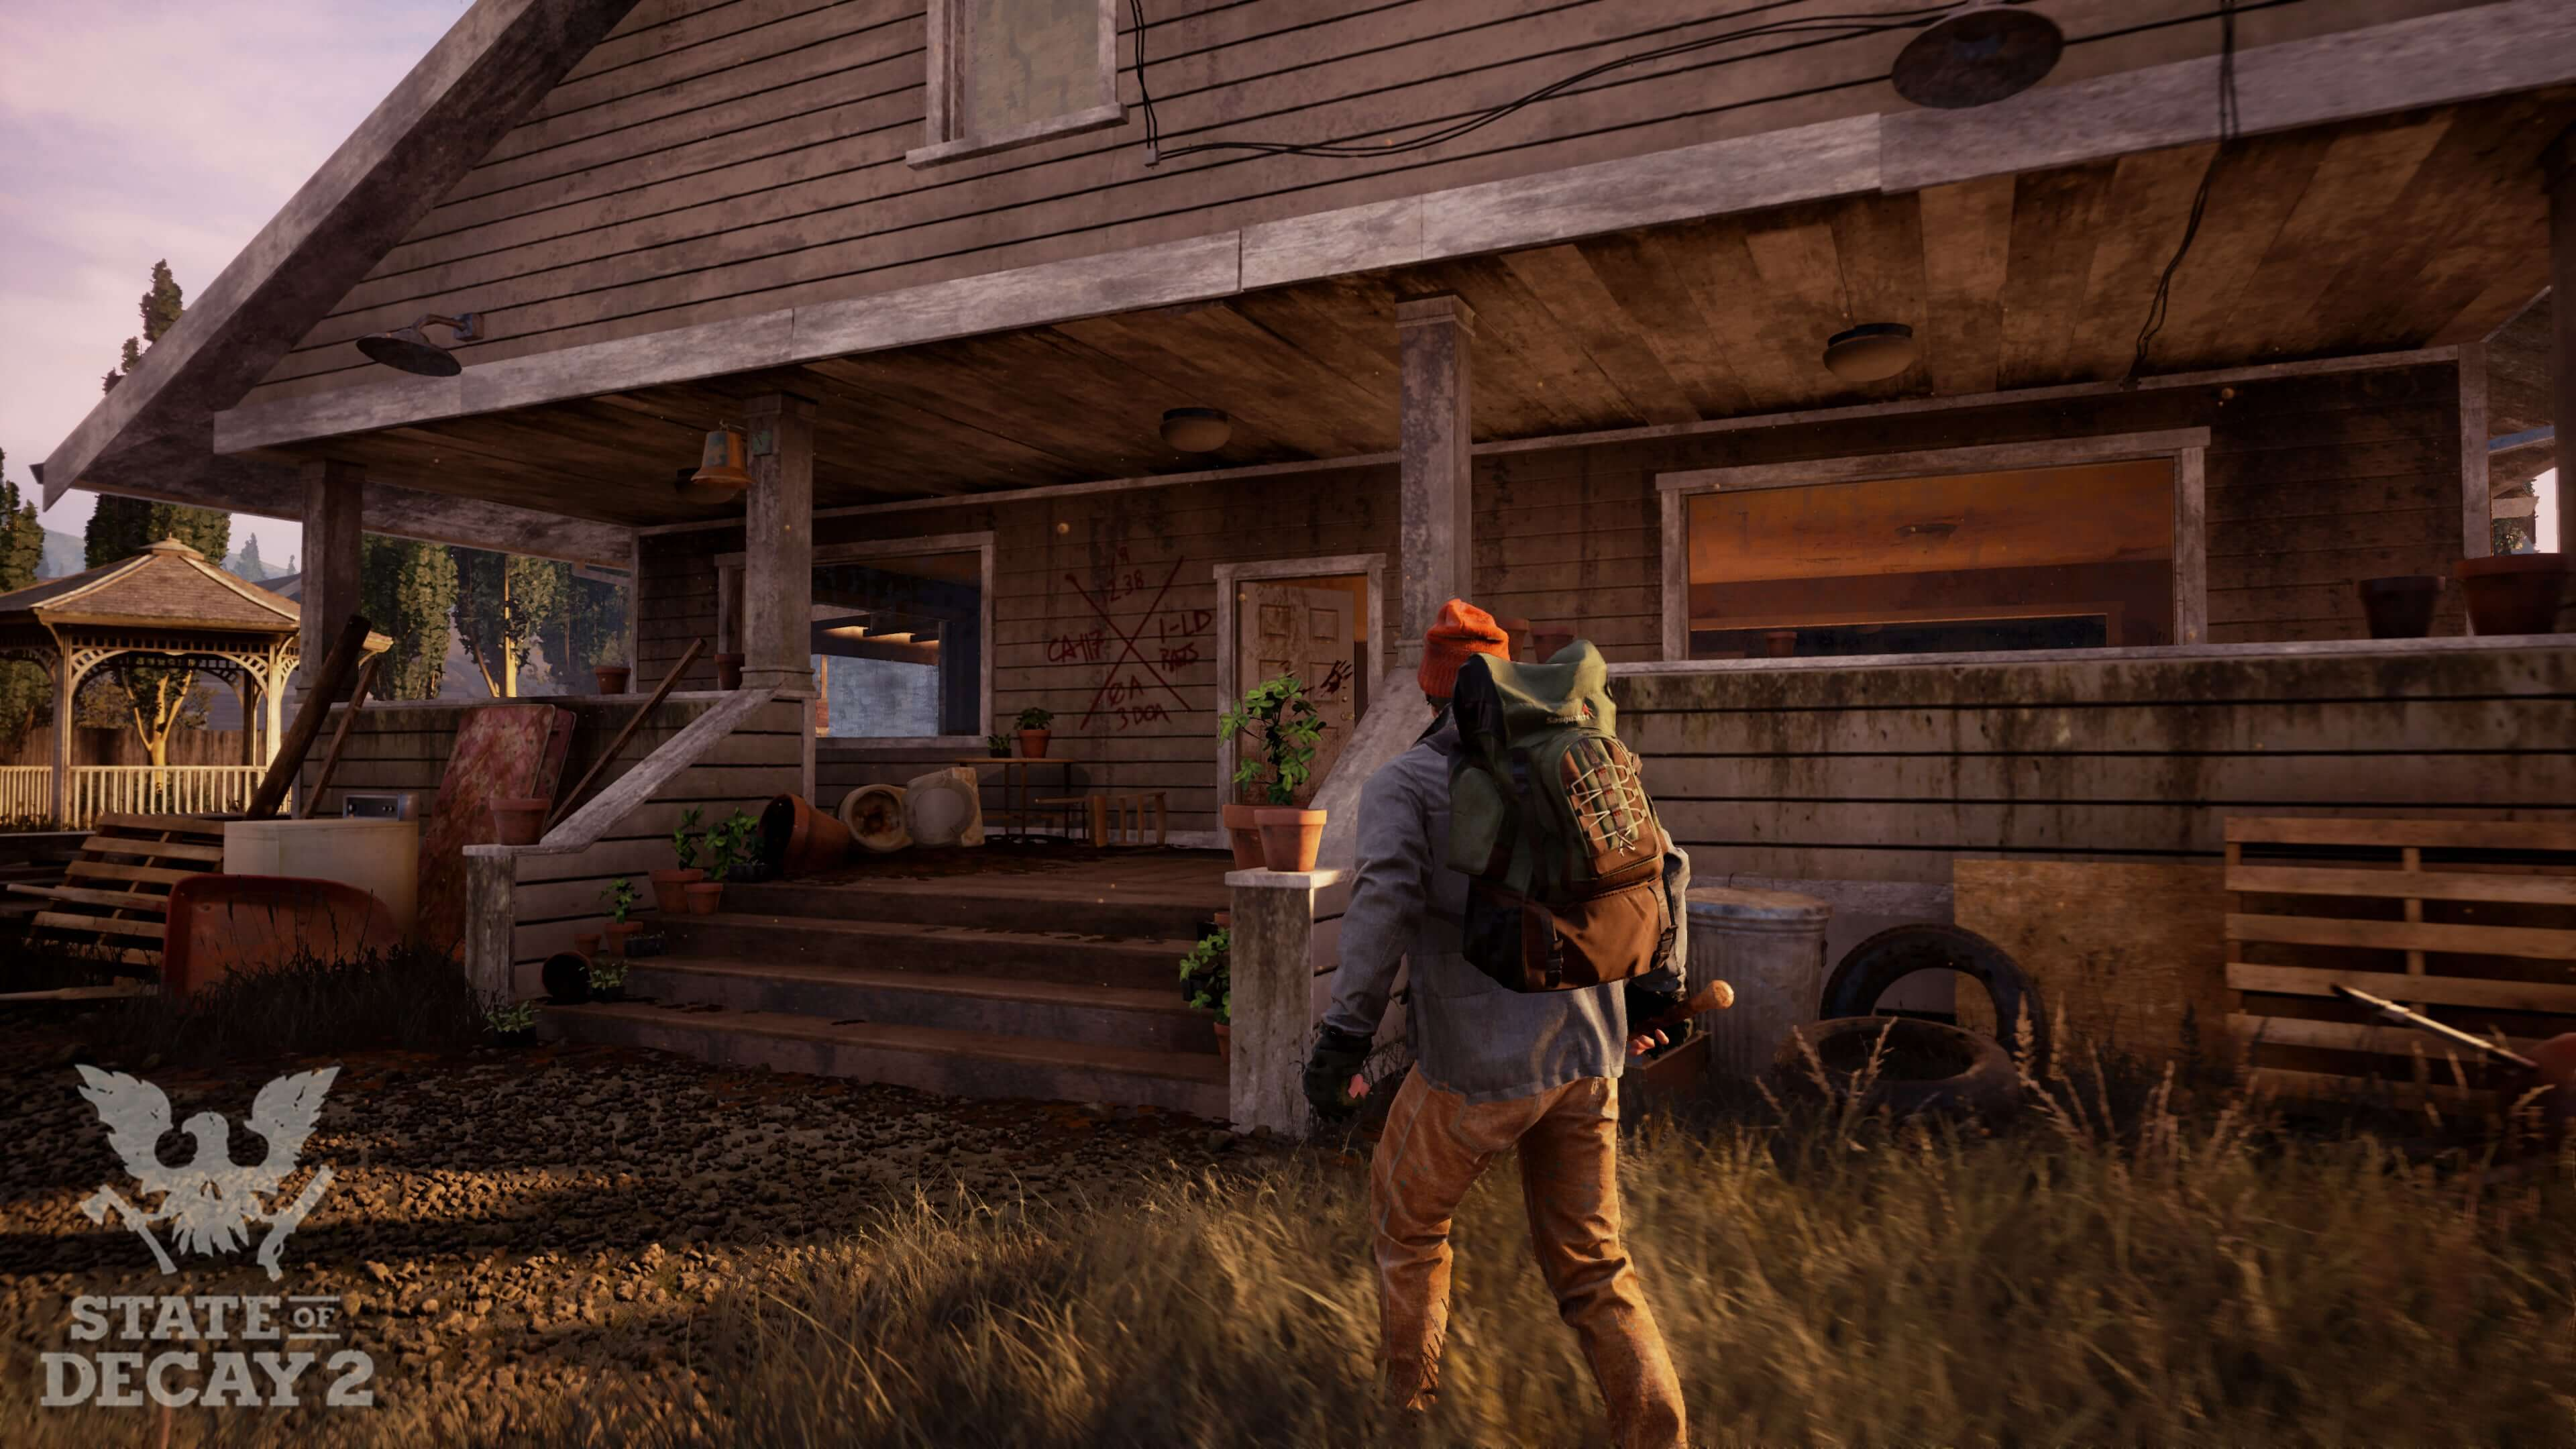 State of Decay 2 gets 25 minutes of new co-op gameplay